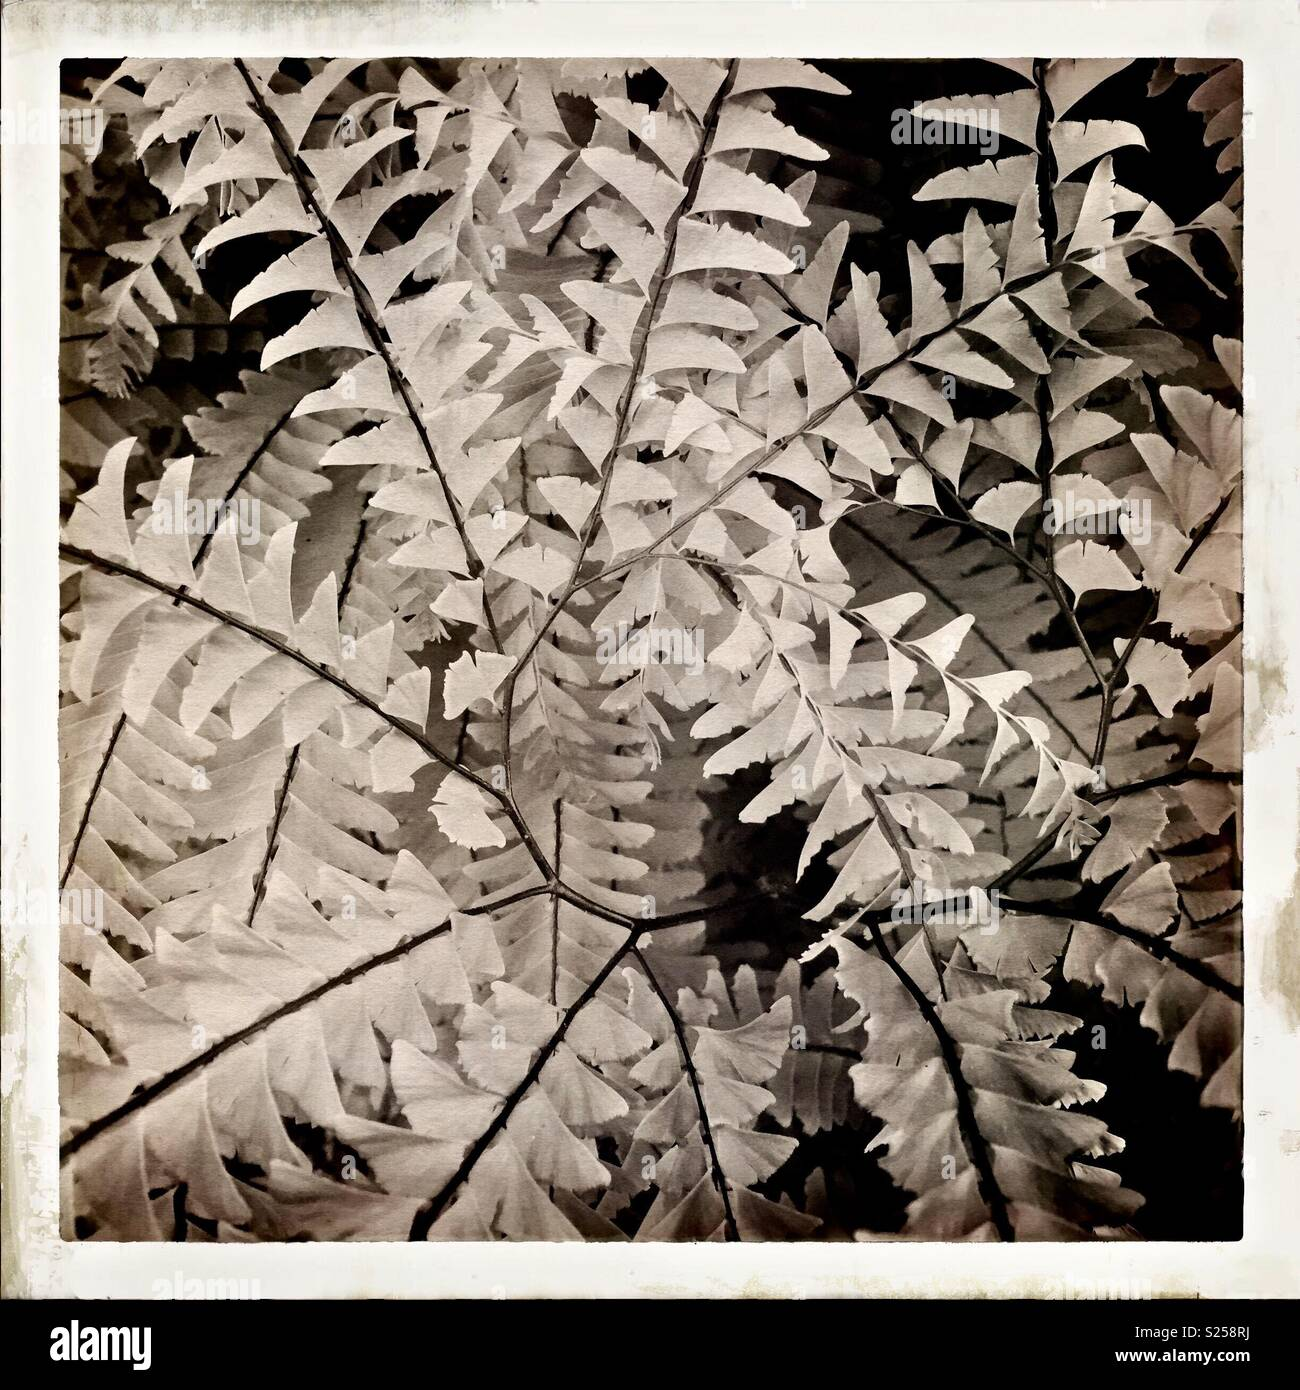 Monotone image of a spiraling fern frond - Stock Image